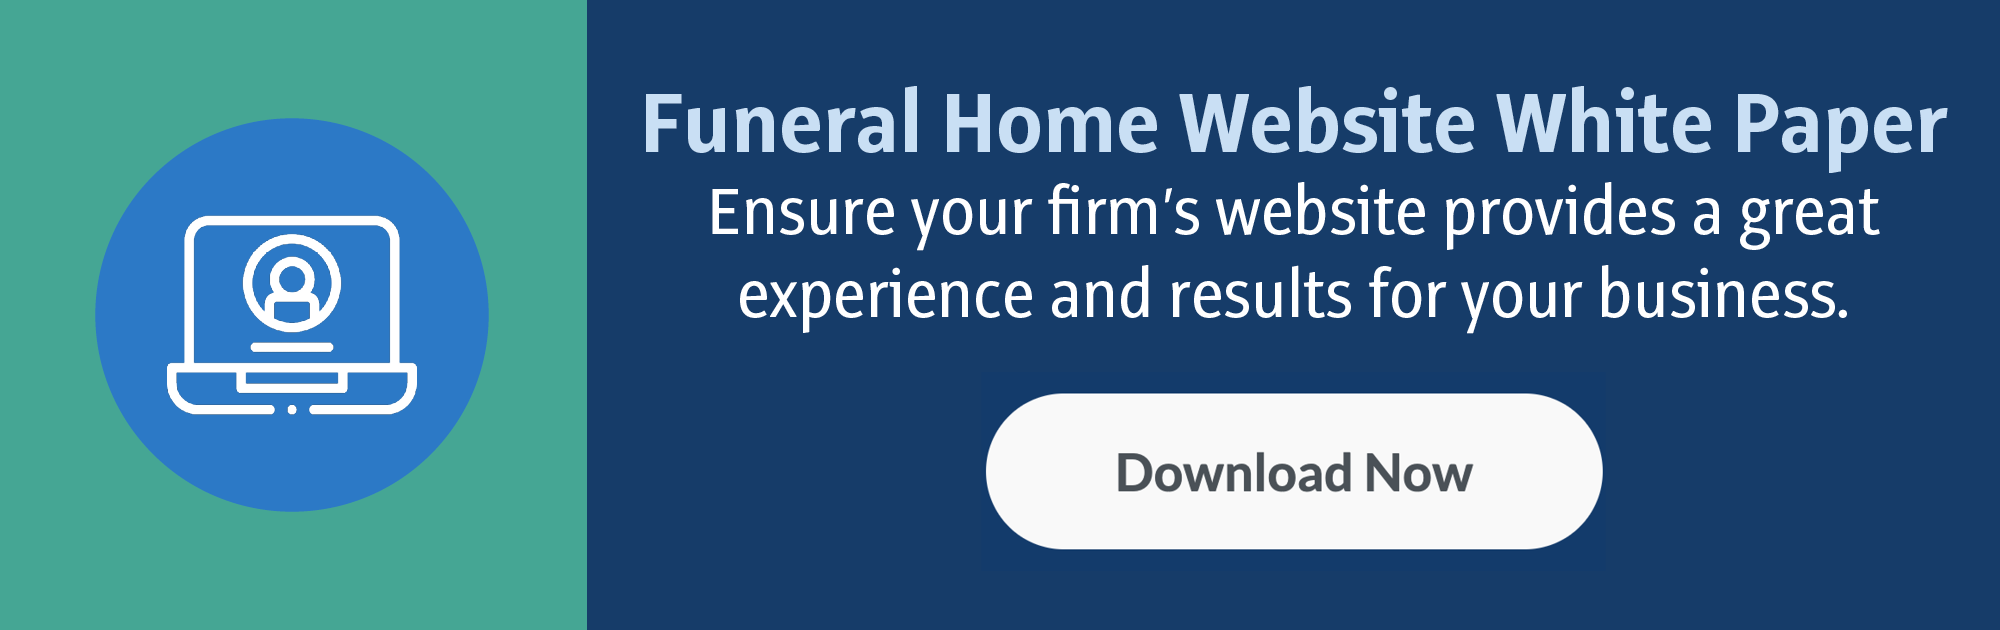 Funeral Home Website White Paper: Ensure your firm's website provides a great experience and results for your business. (Download Now)